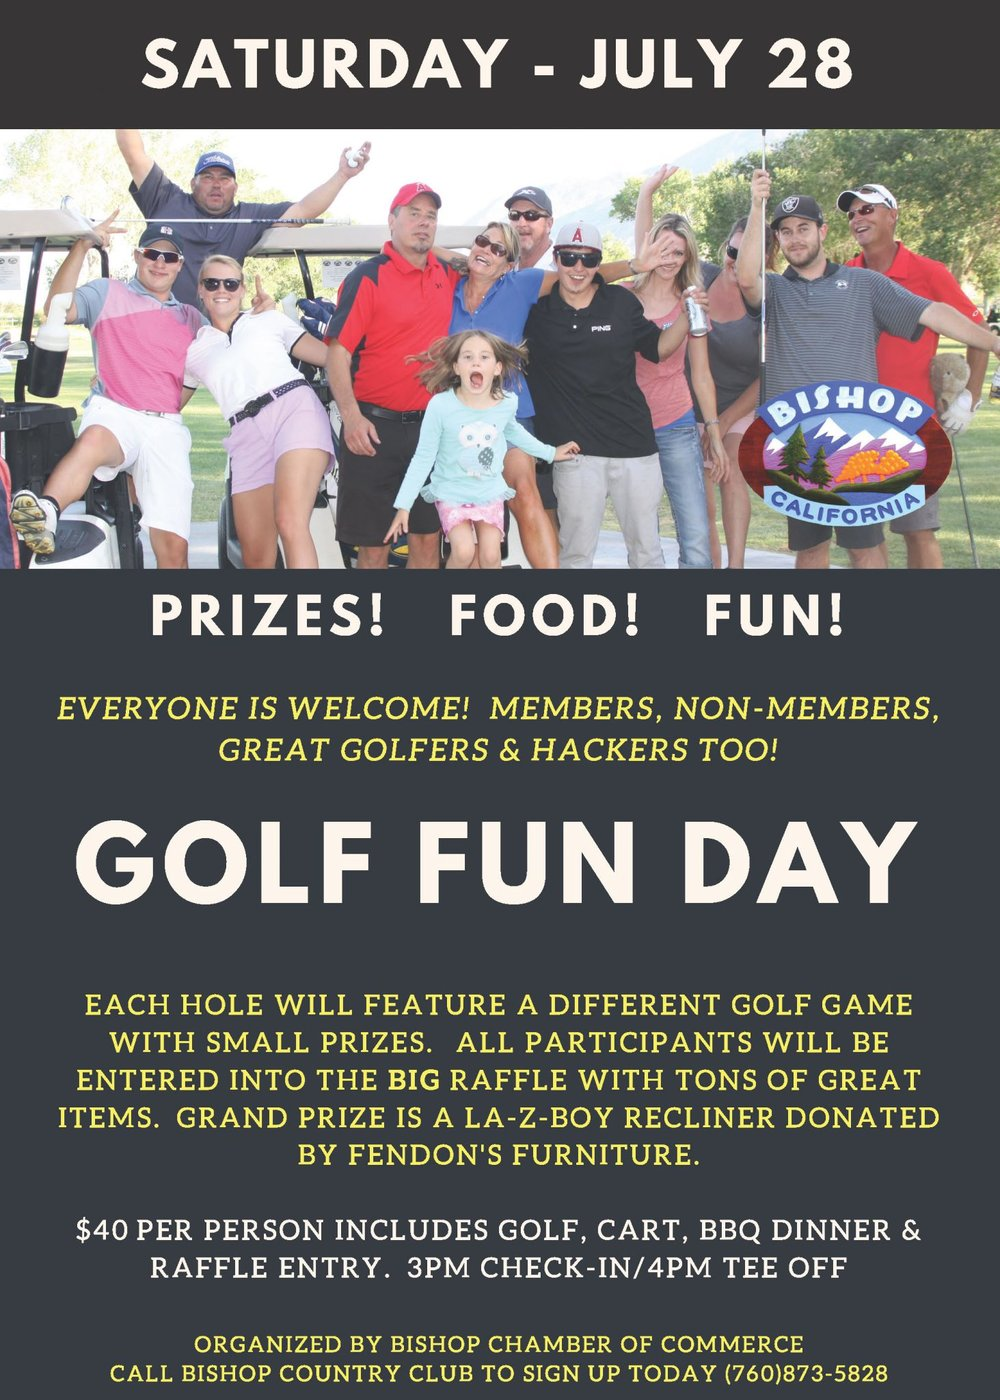 GOLF-FUN-DAY-FLYER-2018-FINAL.jpg